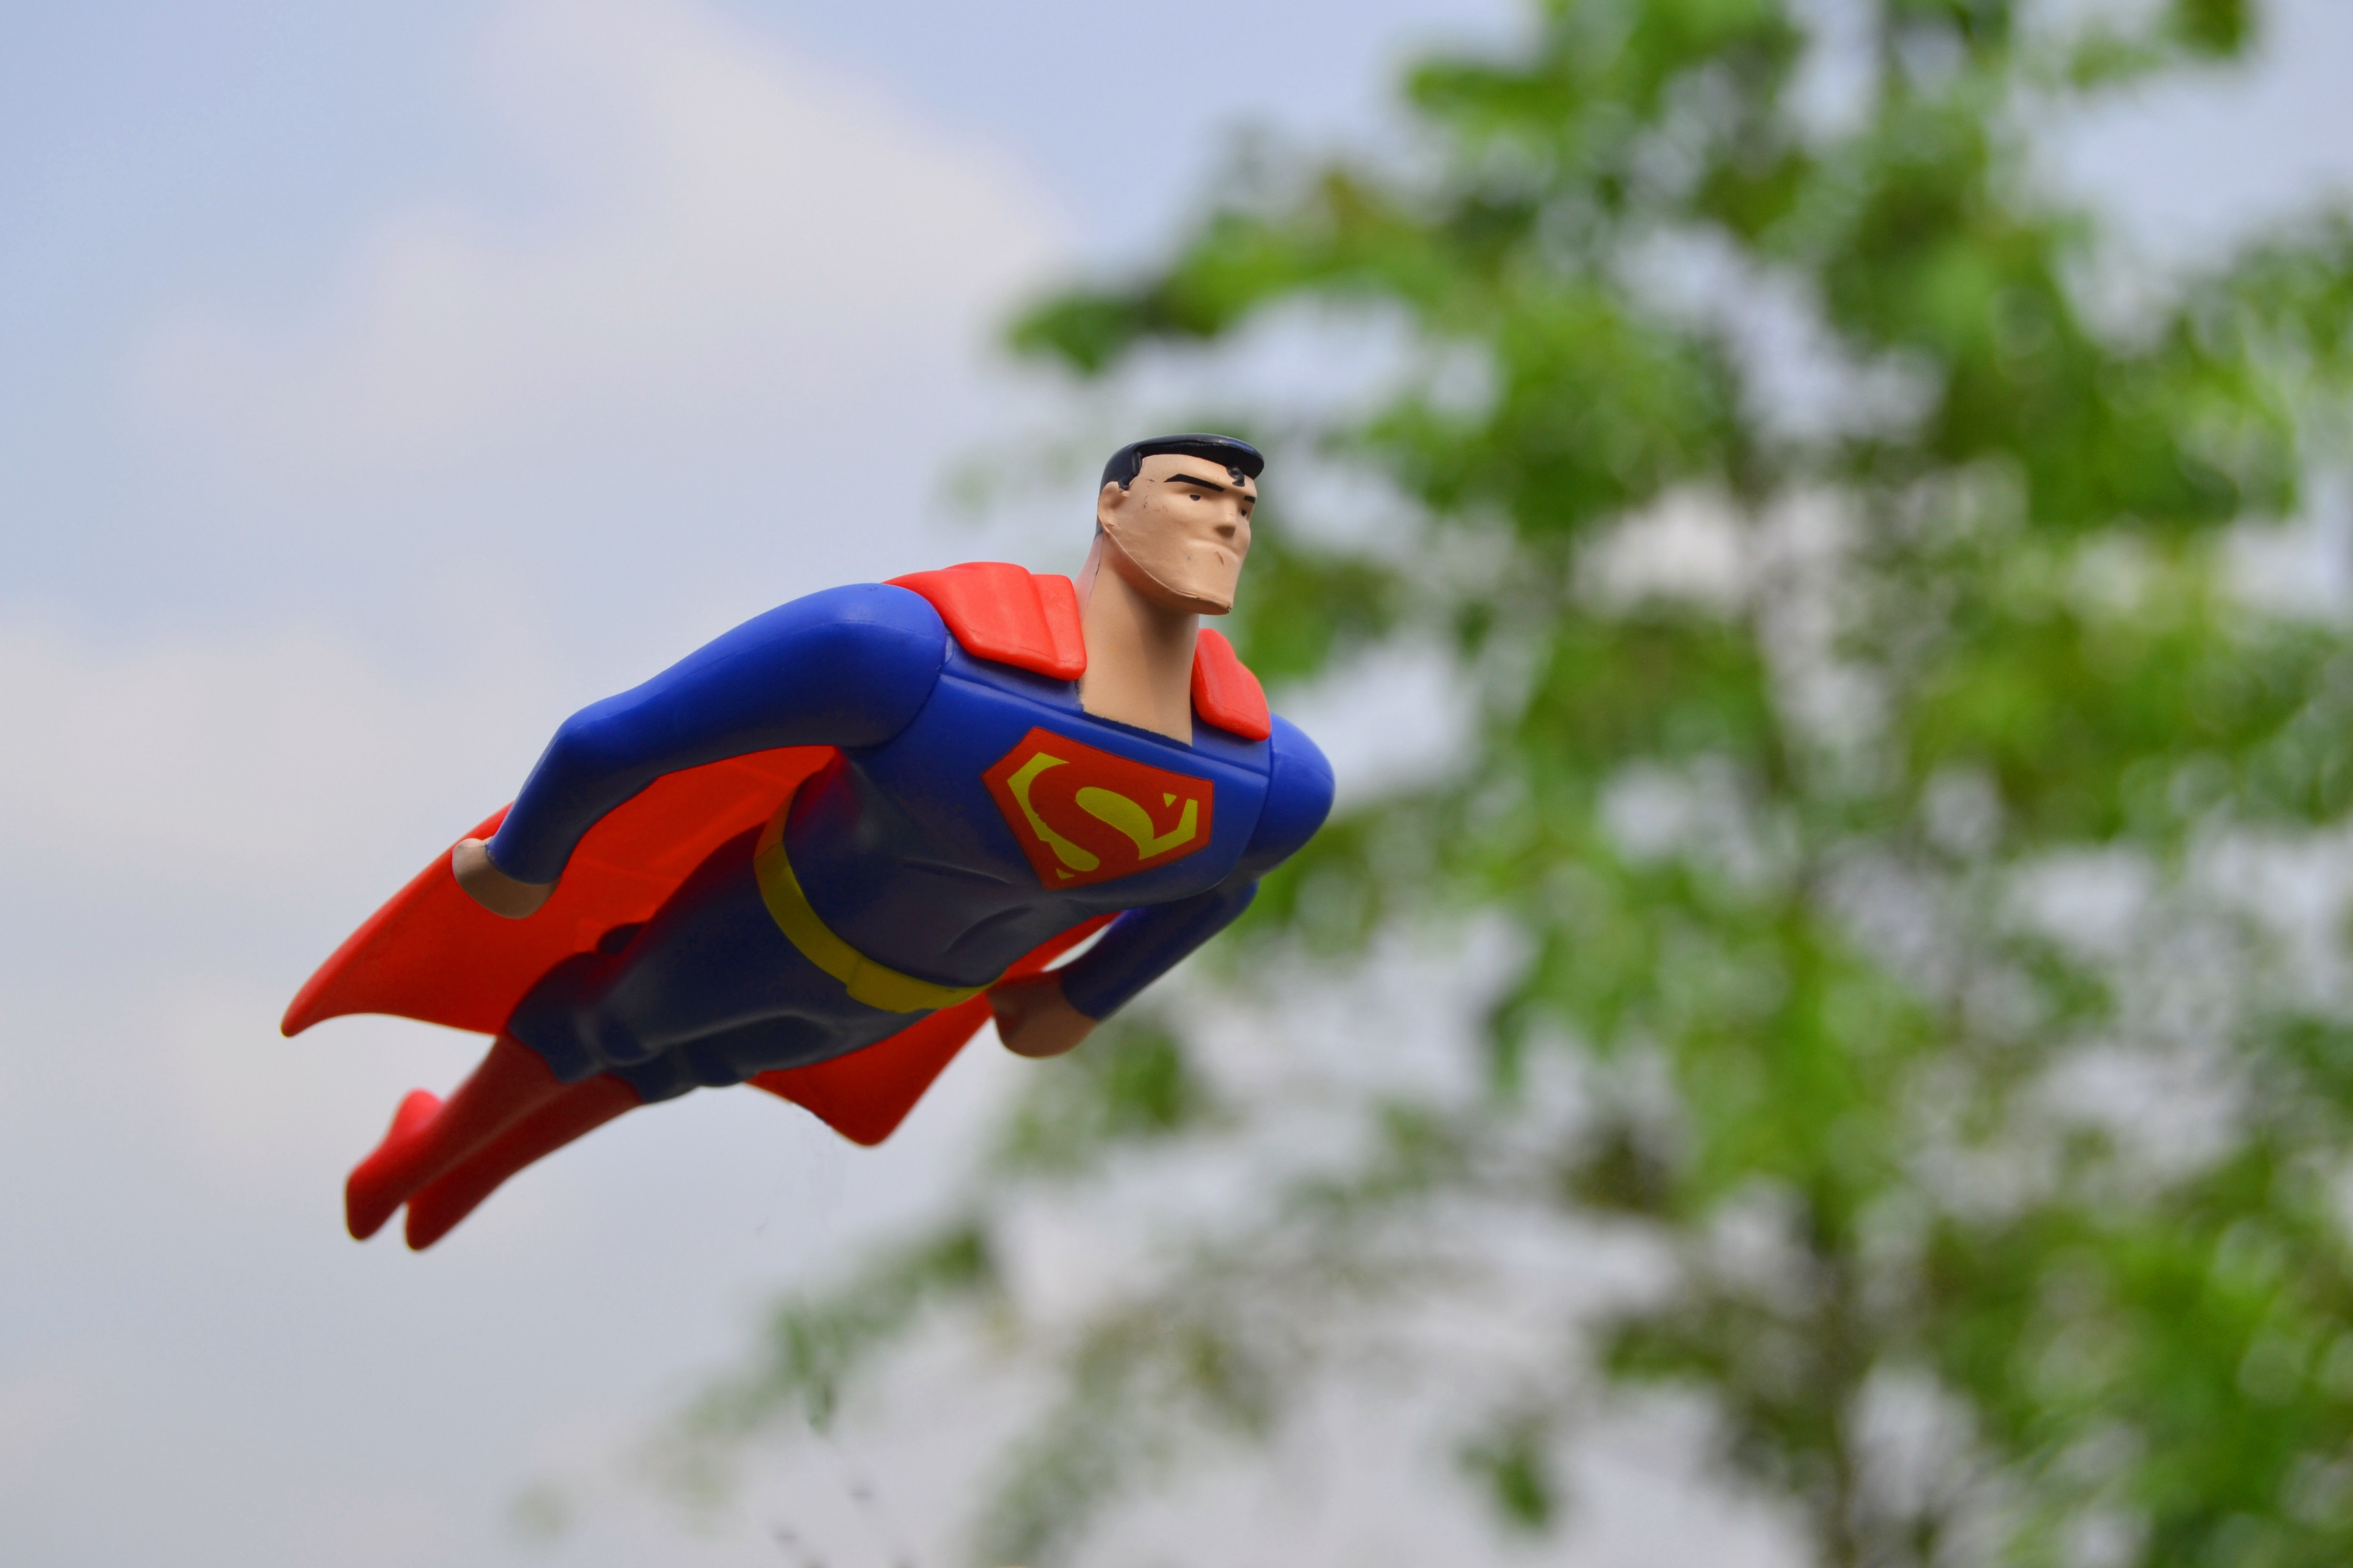 An action figure of Superman flies through the air in front of a green tree